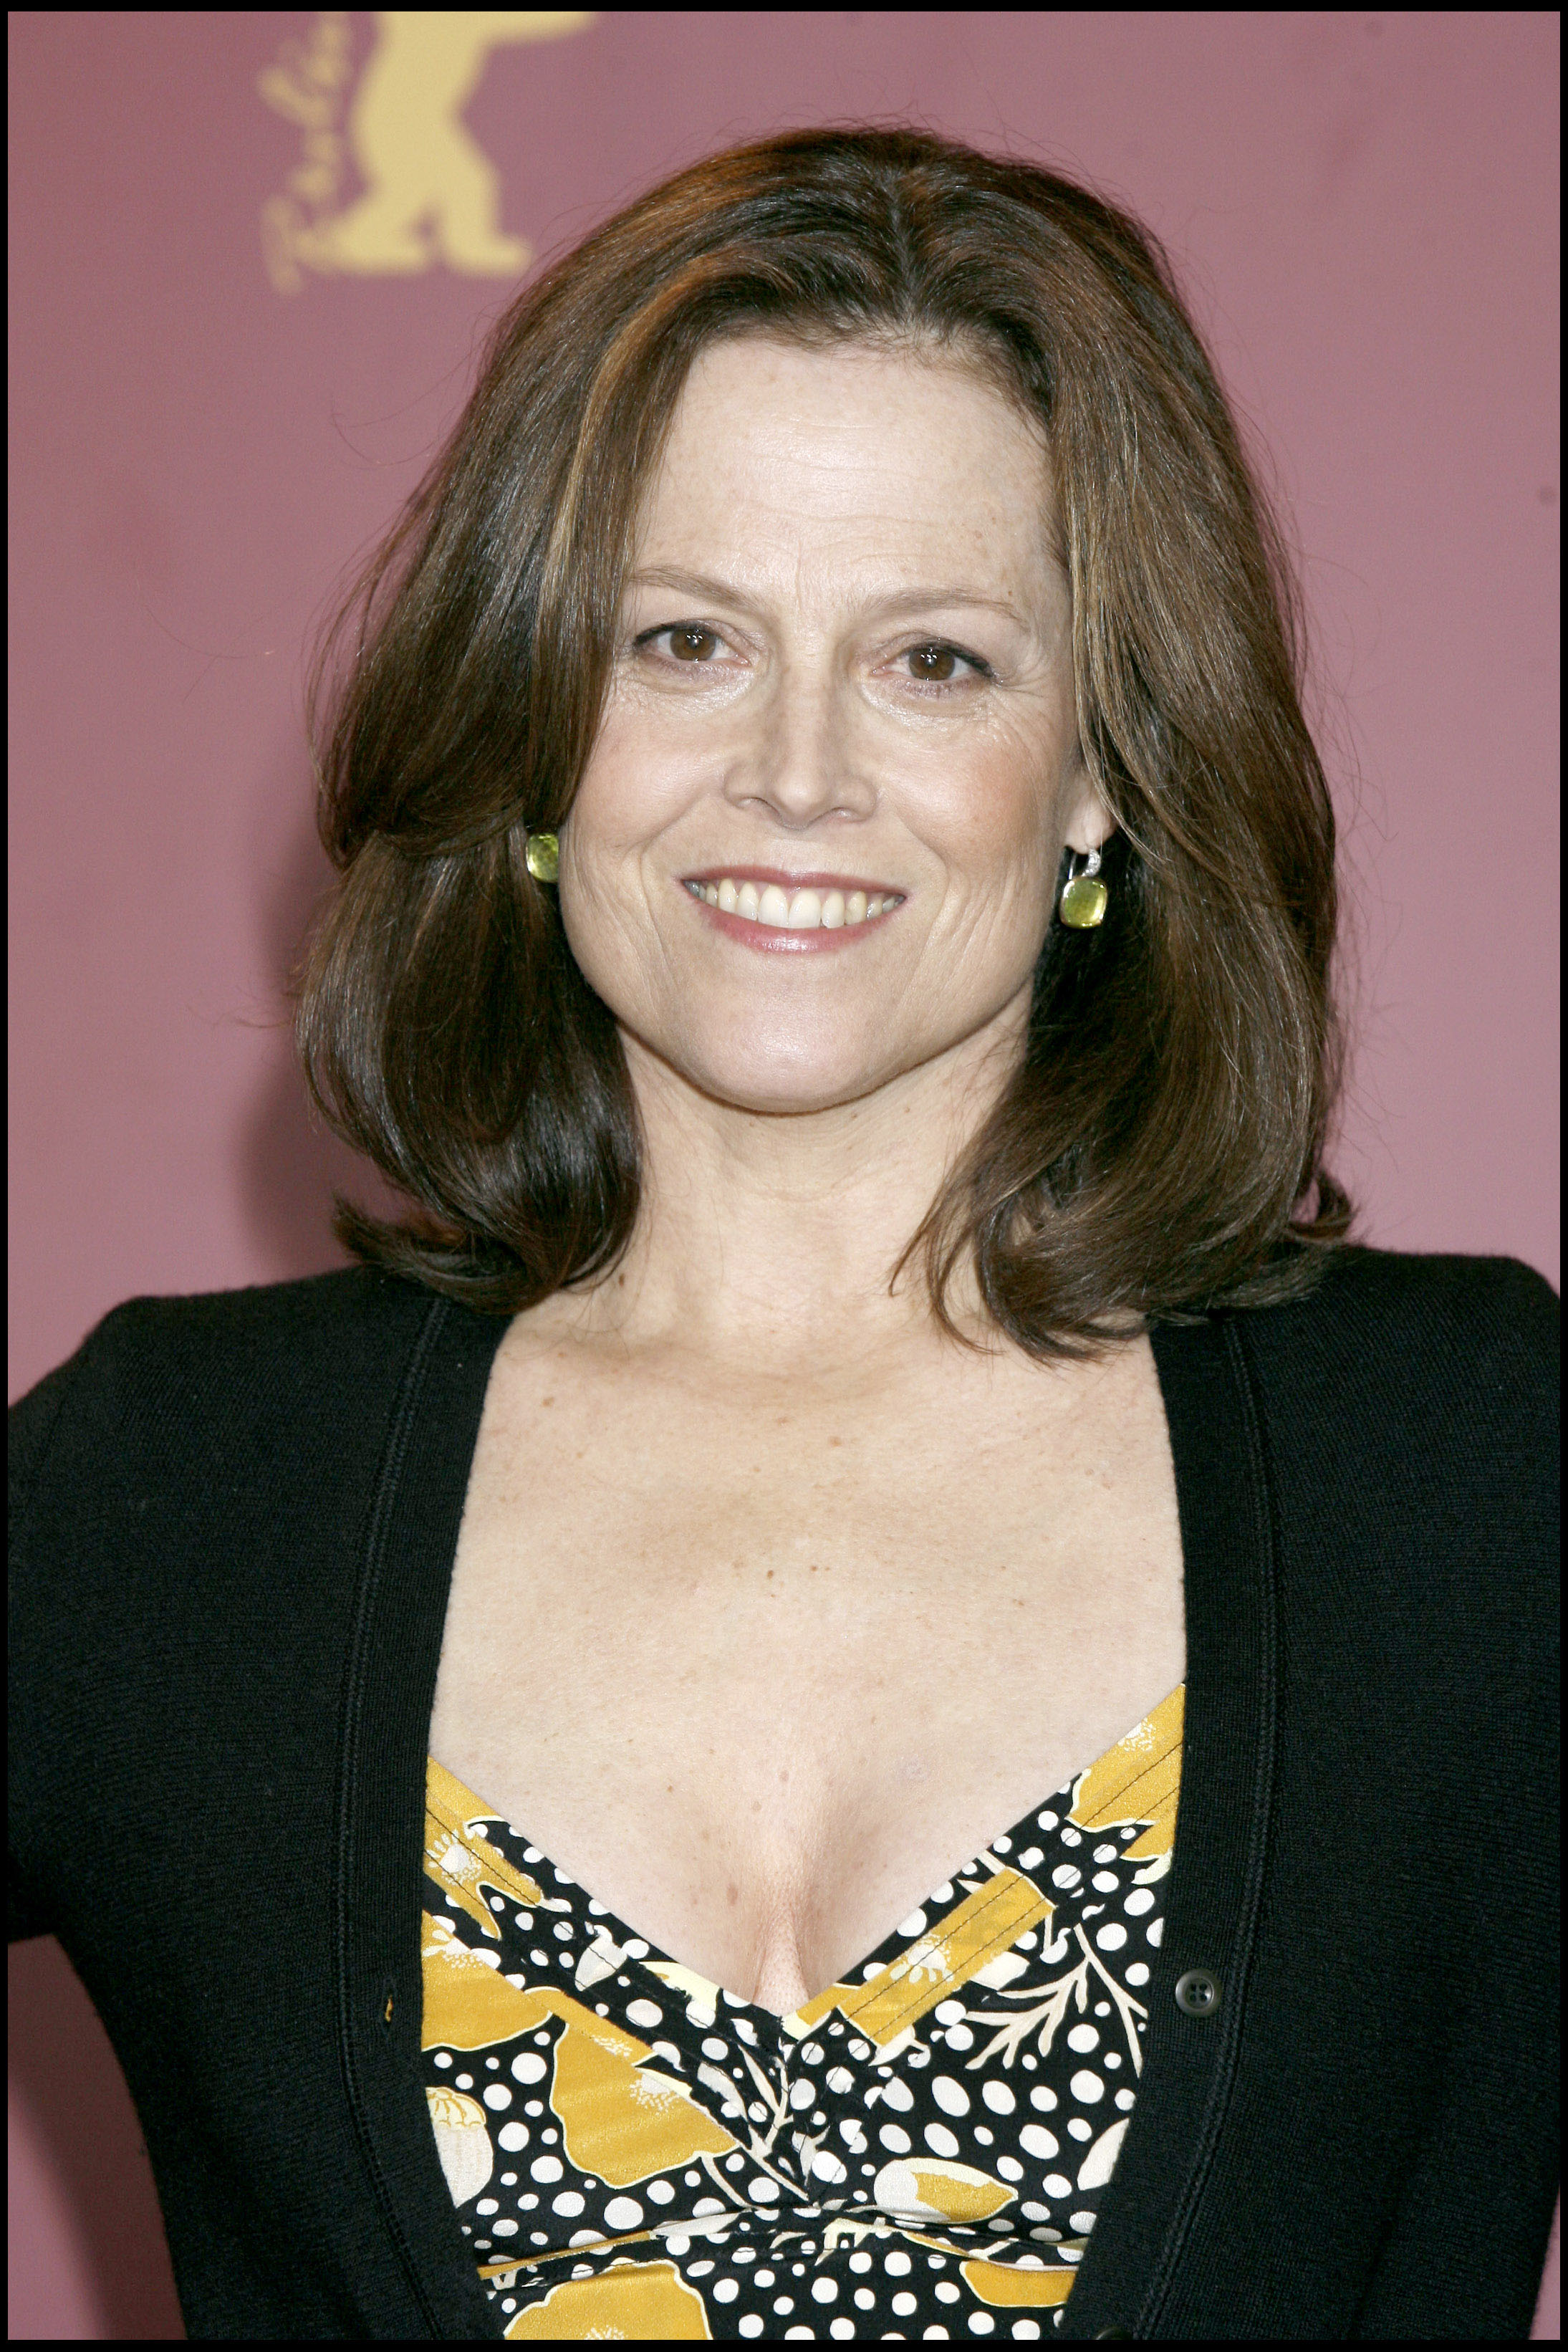 Sigourney Weaver Filmography And Biography On Movies Film: Diane Lane = Hottest Older Woman In Hollywood!